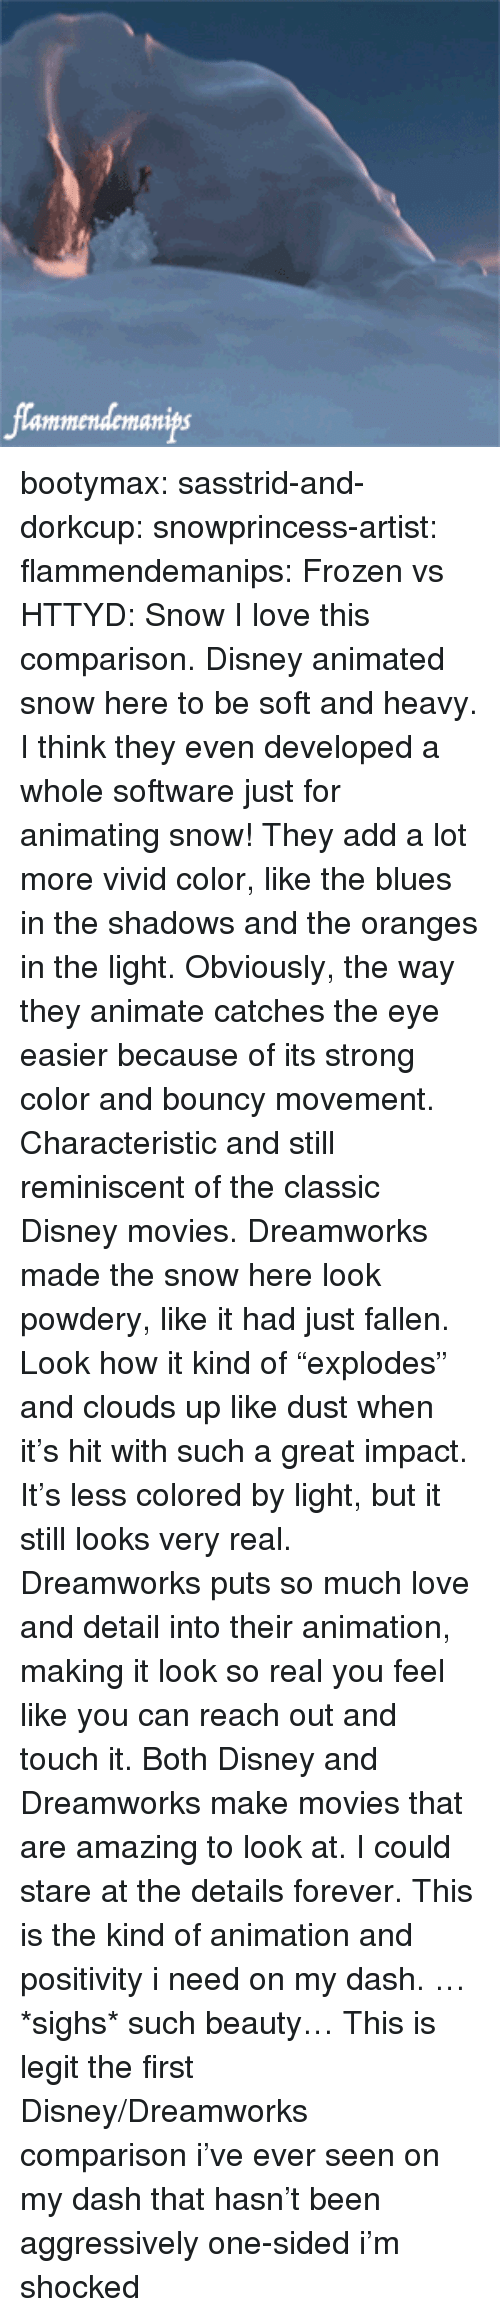 """bouncy: lammendemanips bootymax: sasstrid-and-dorkcup:  snowprincess-artist:  flammendemanips:   Frozen vs HTTYD: Snow   I love this comparison. Disney animated snow here to be soft and heavy. I think they even developed a whole software just for animating snow! They add a lot more vivid color, like the blues in the shadows and the oranges in the light. Obviously, the way they animate catches the eye easier because of its strong color and bouncy movement. Characteristic and still reminiscent of the classic Disney movies. Dreamworks made the snow here look powdery, like it had just fallen. Look how it kind of """"explodes"""" and clouds up like dust when  it's hit with such a great impact. It's less colored by light, but it still looks very real. Dreamworks puts so much love and detail into their animation, making it look so real you feel like you can reach out and touch it.  Both Disney and Dreamworks make movies that are amazing to look at. I could stare at the details forever.  This is the kind of animation and positivity i need on my dash. …*sighs* such beauty…   This is legit the first Disney/Dreamworks comparison i've ever seen on my dash that hasn't been aggressively one-sided i'm shocked"""